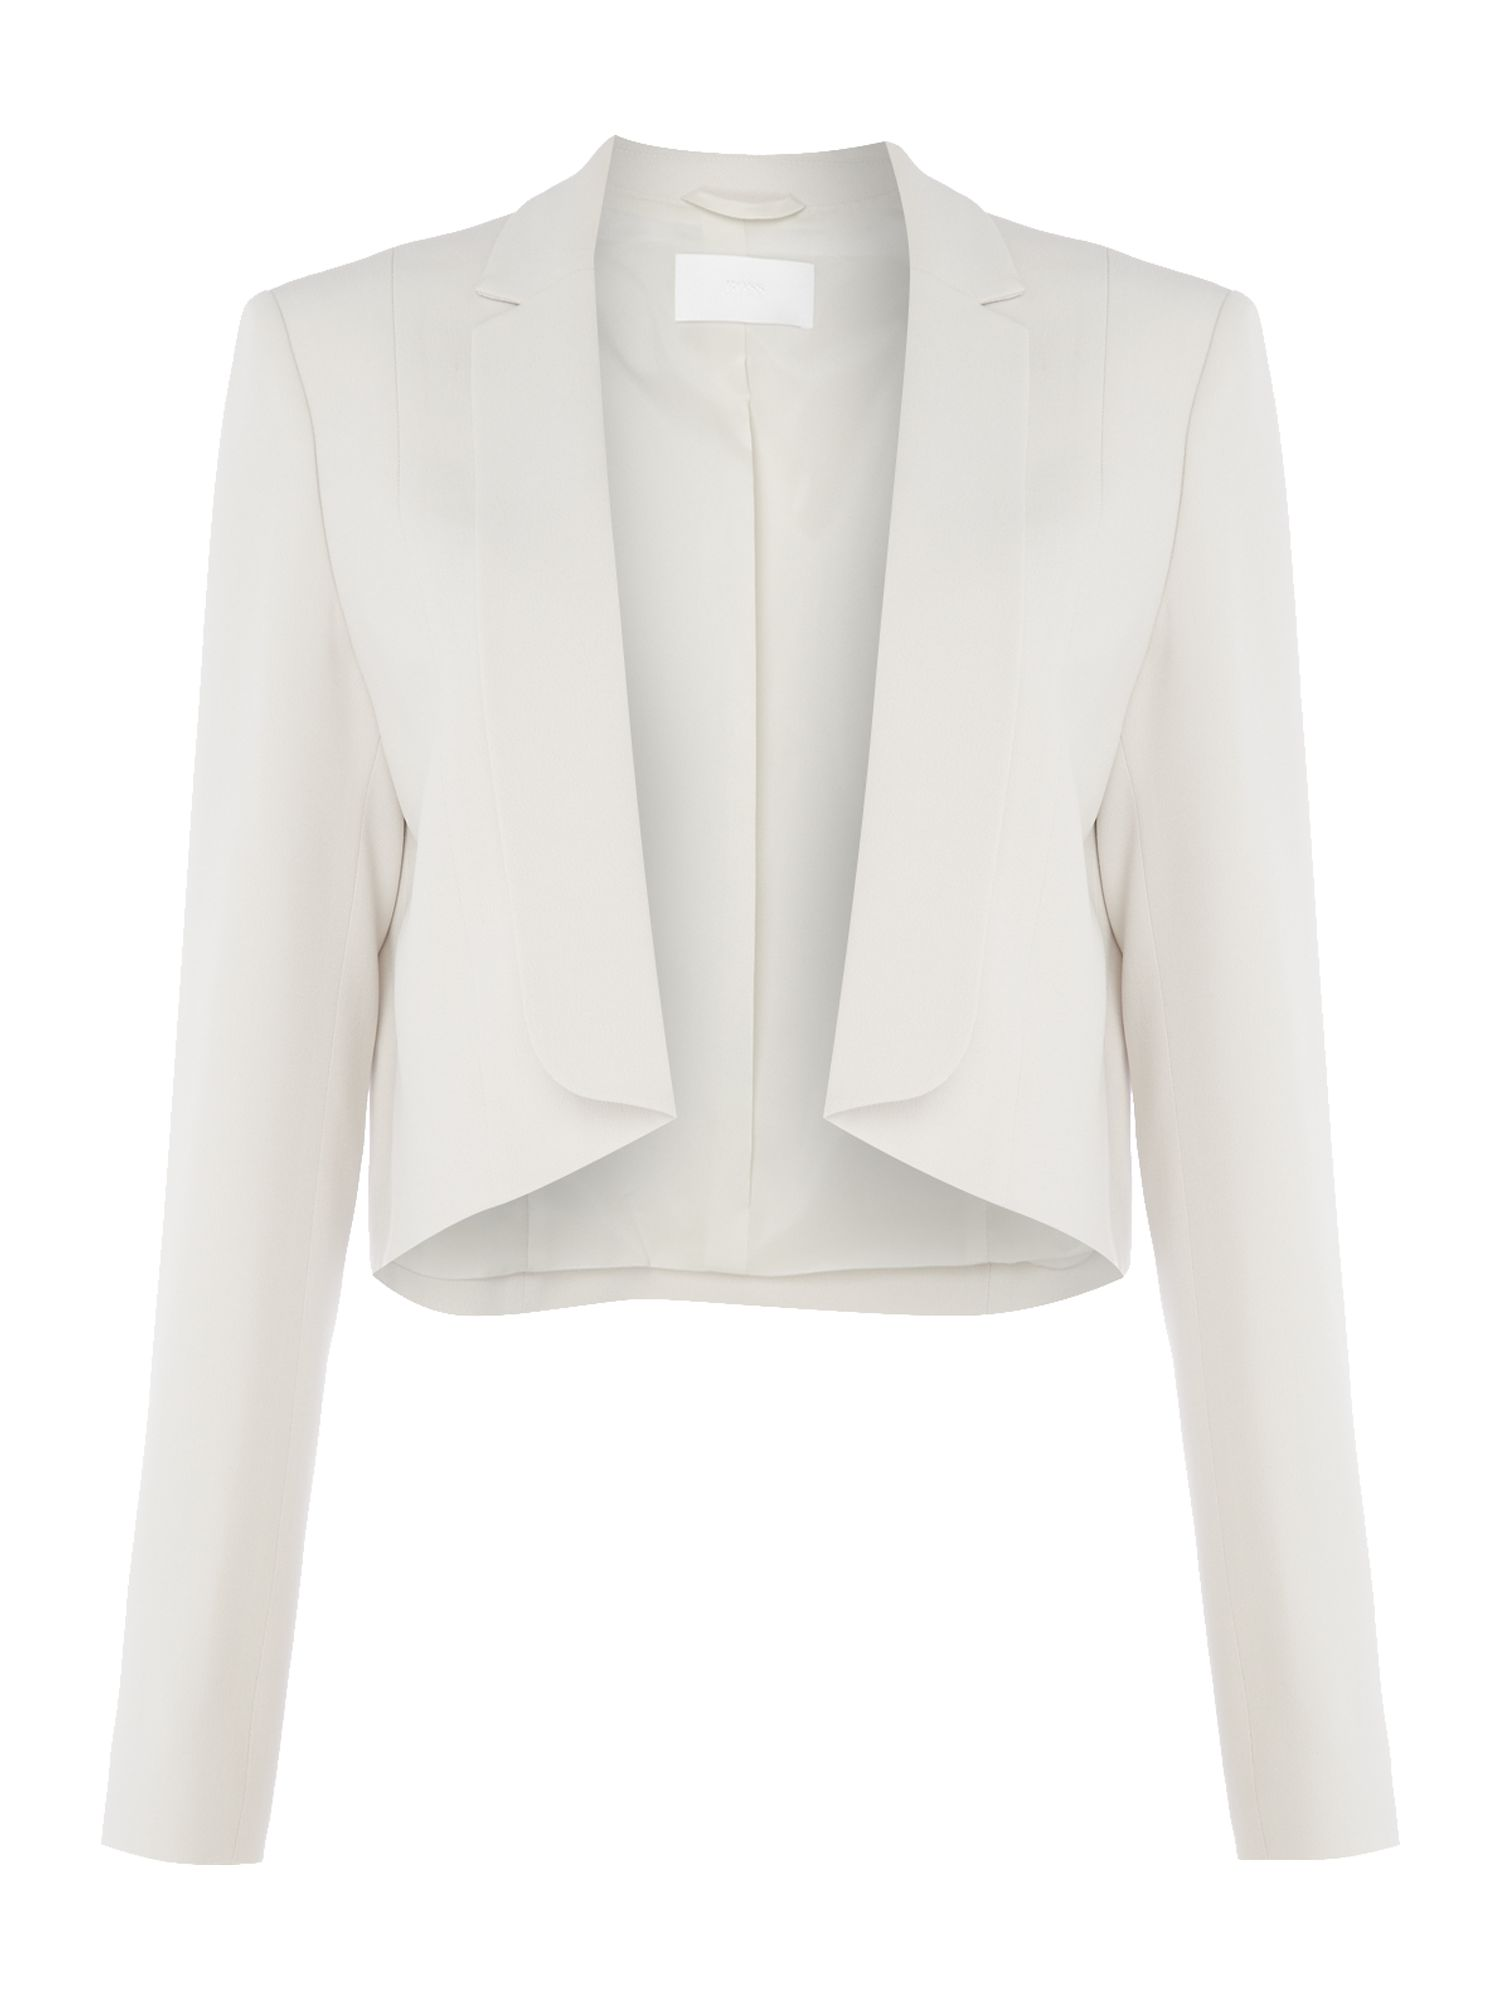 Hugo Boss Longsleeve jacket with open front, Silver